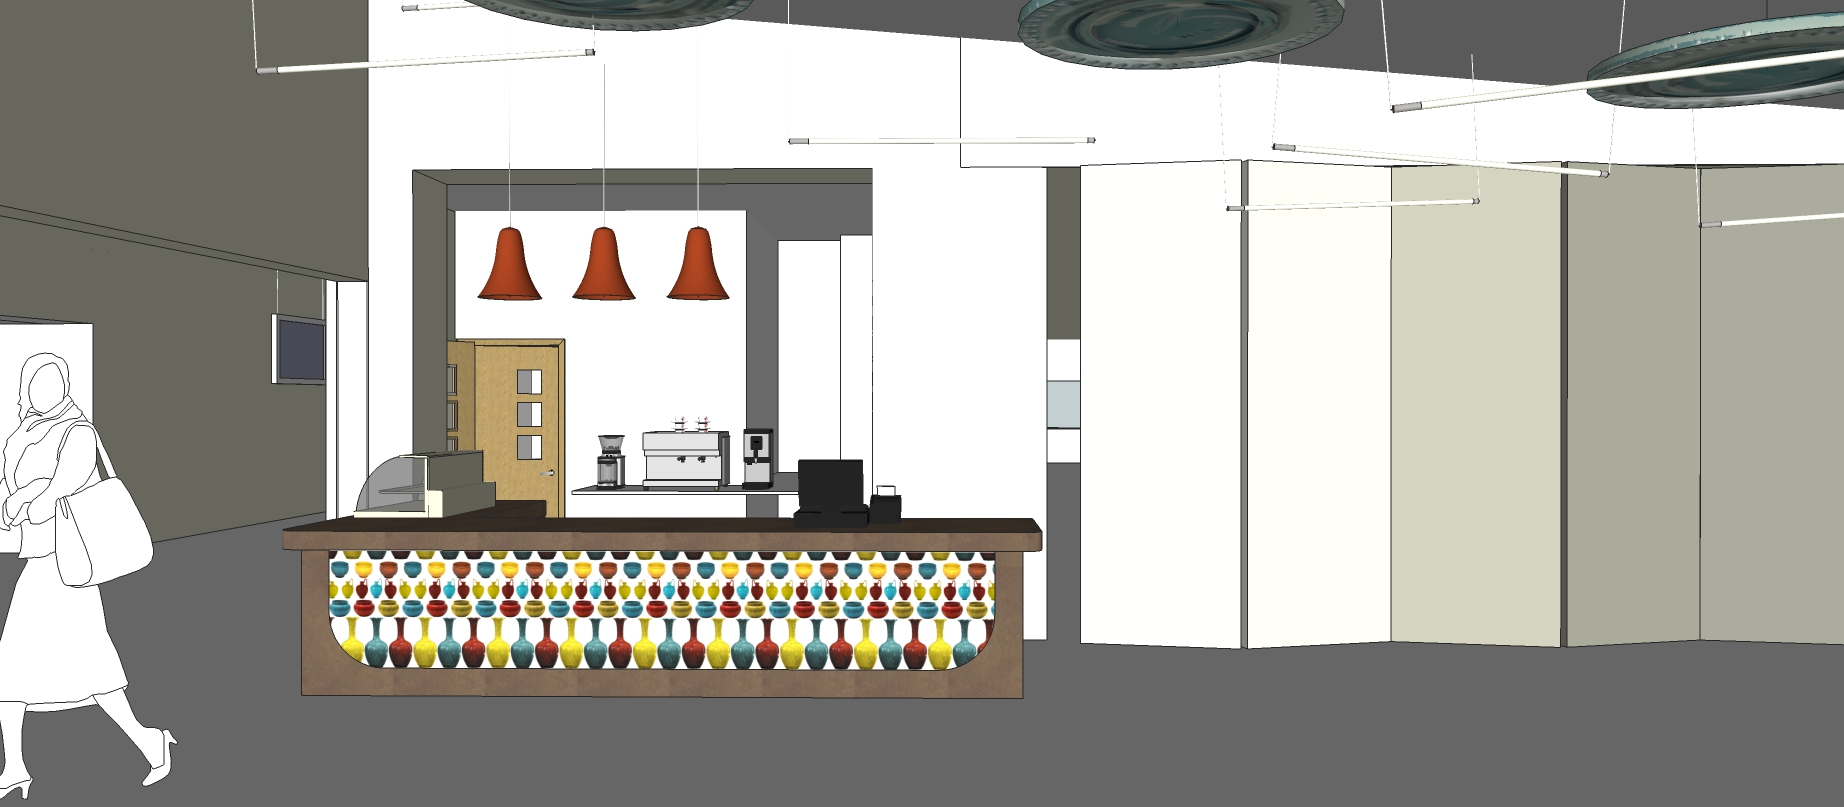 Cafe counter sketch proposal